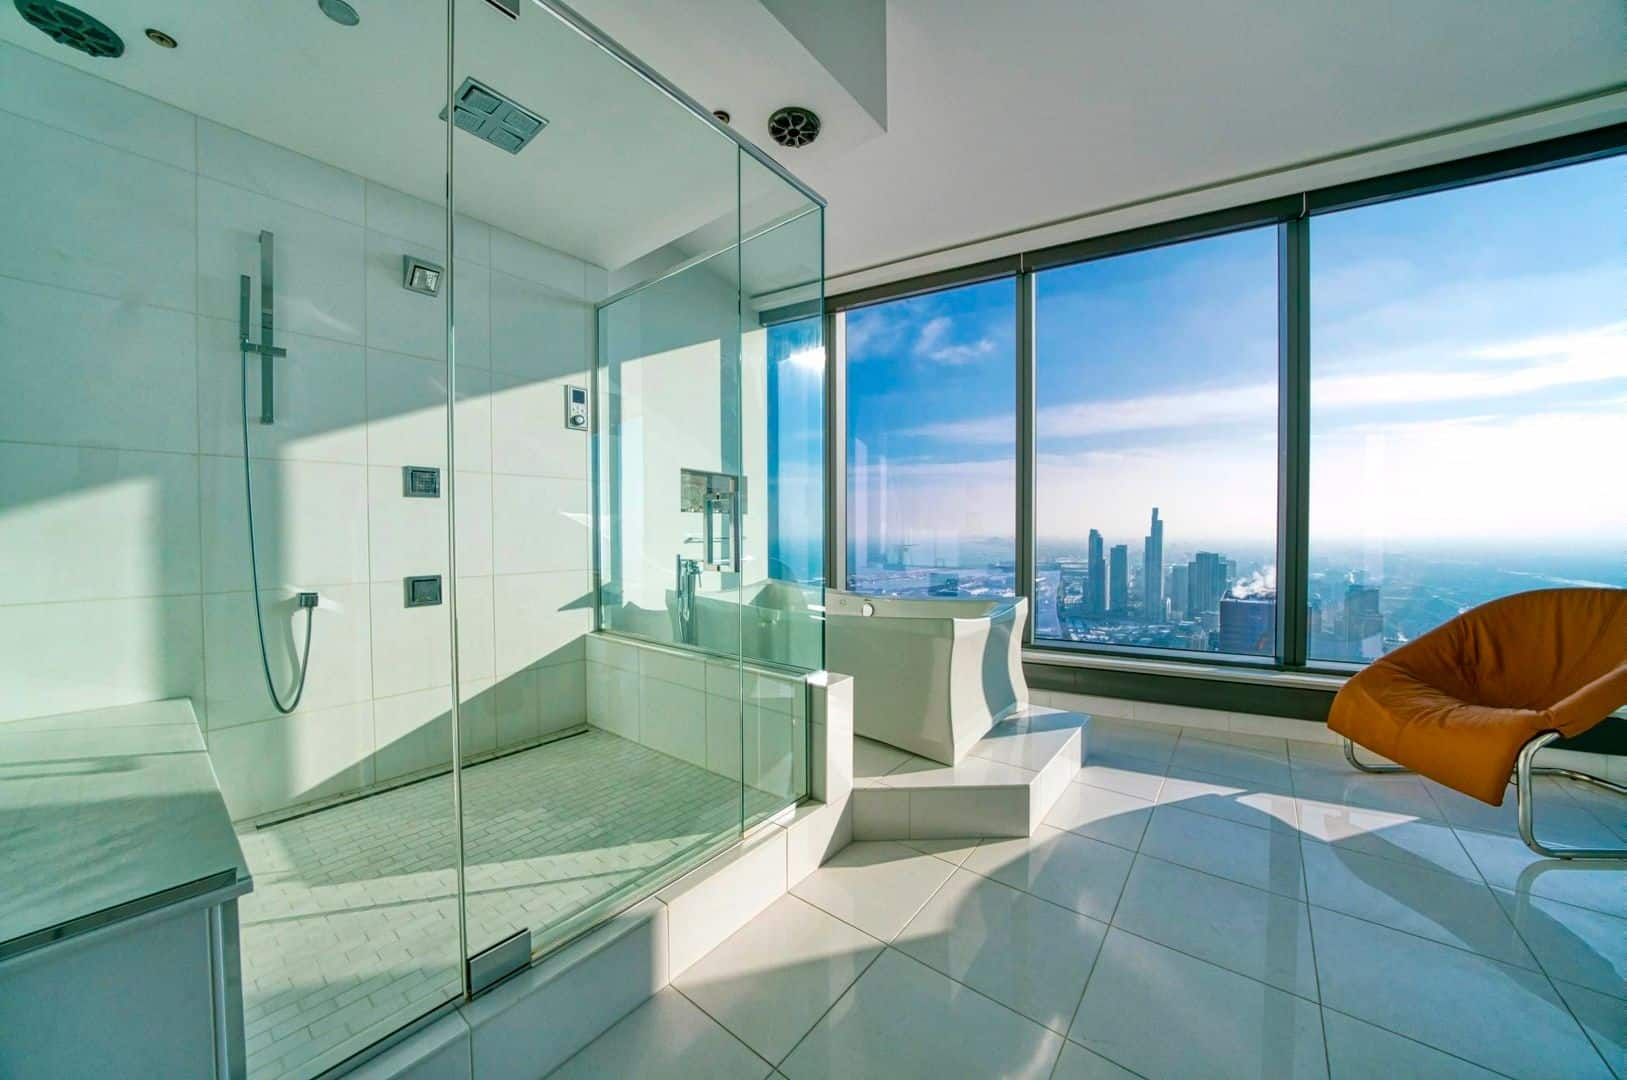 Spectacular Downtown Chicago Penthouse Rental - Bath